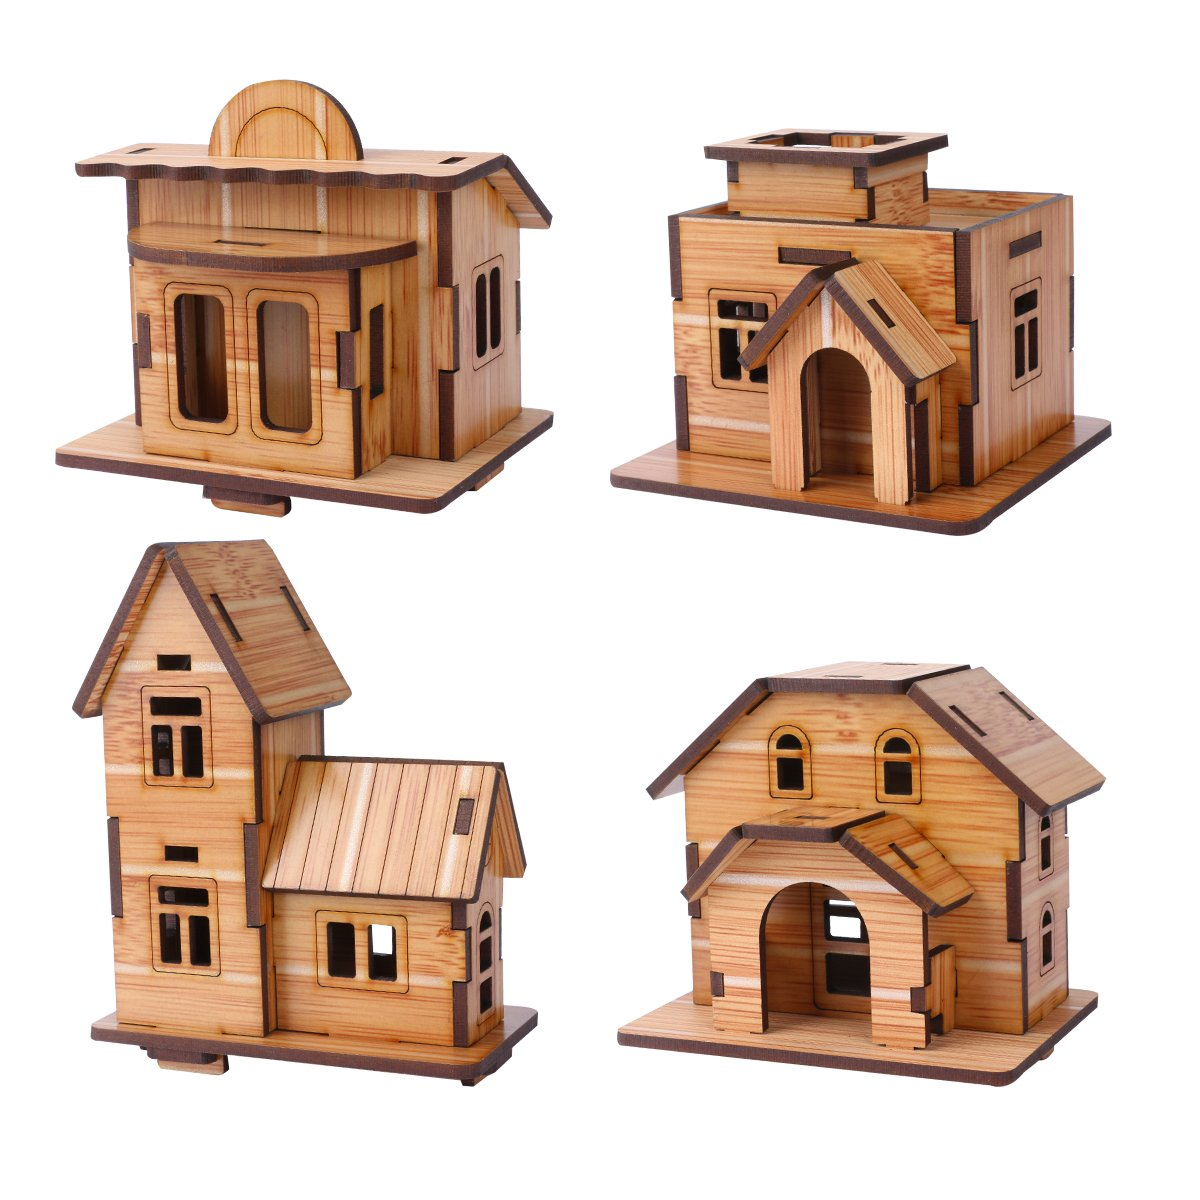 ZOSEN 3D Wooden Puzzle - Mini House Model - Educational Toys 3D Puzzle Gift for Children (4 pieces)